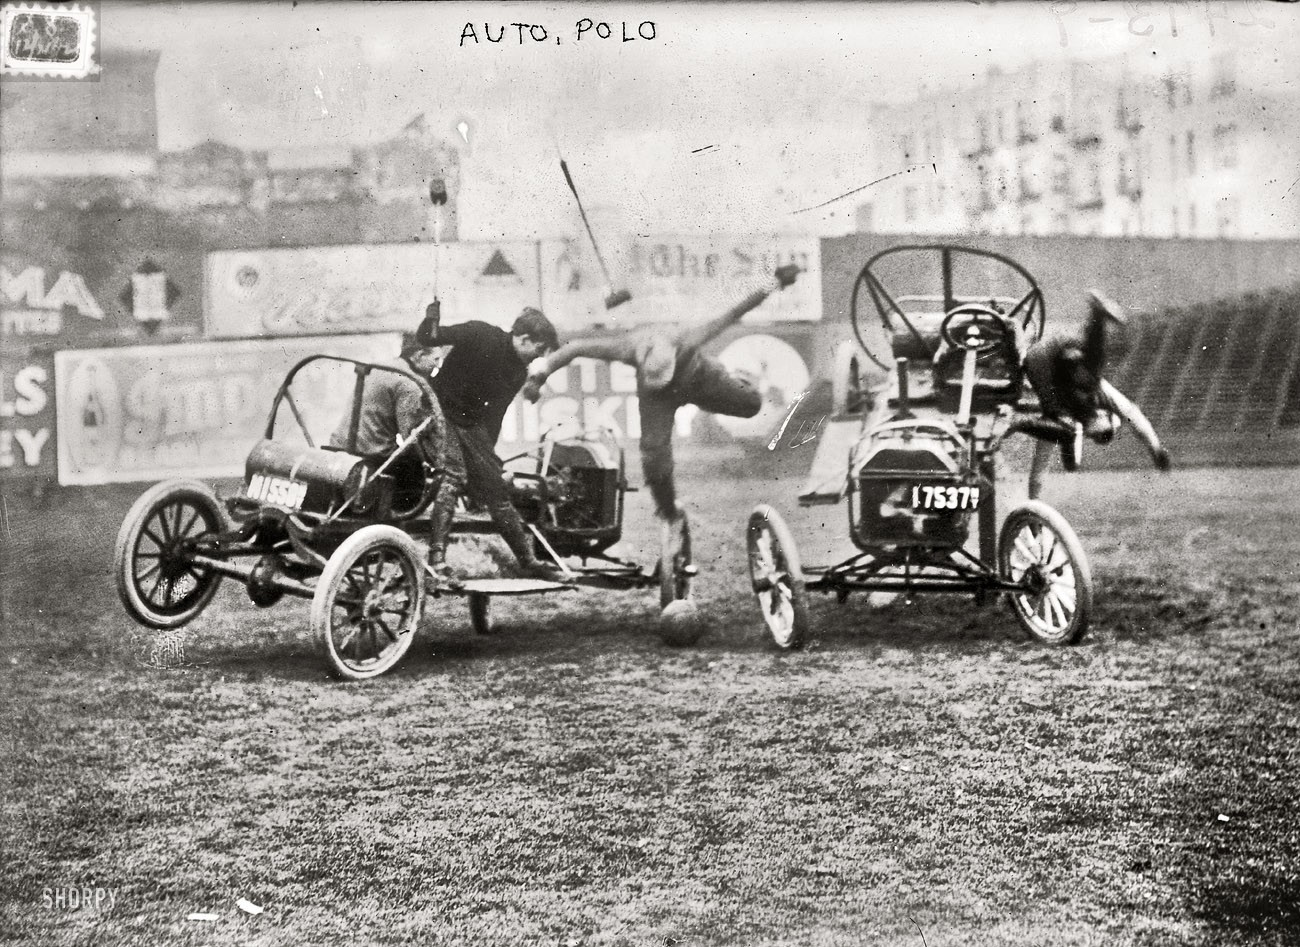 vintage monochrome historic auto polo HD Wallpaper